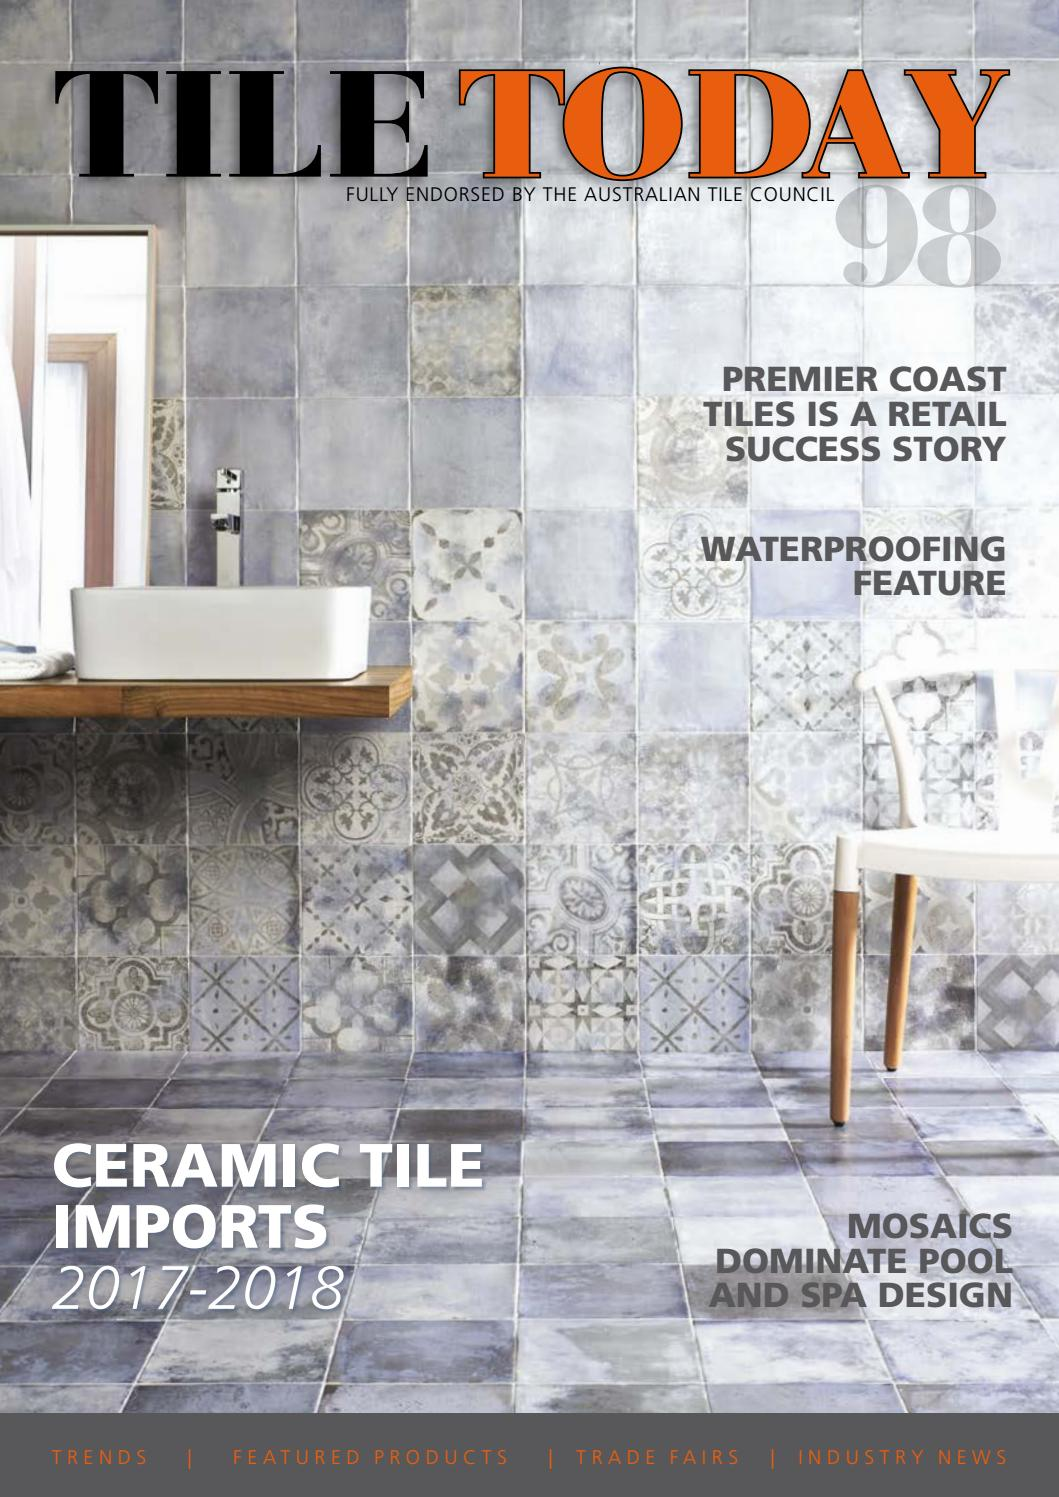 Tile Today Issue 98 September 2018 By Elite Publishing Co Pty Ltd Issuu